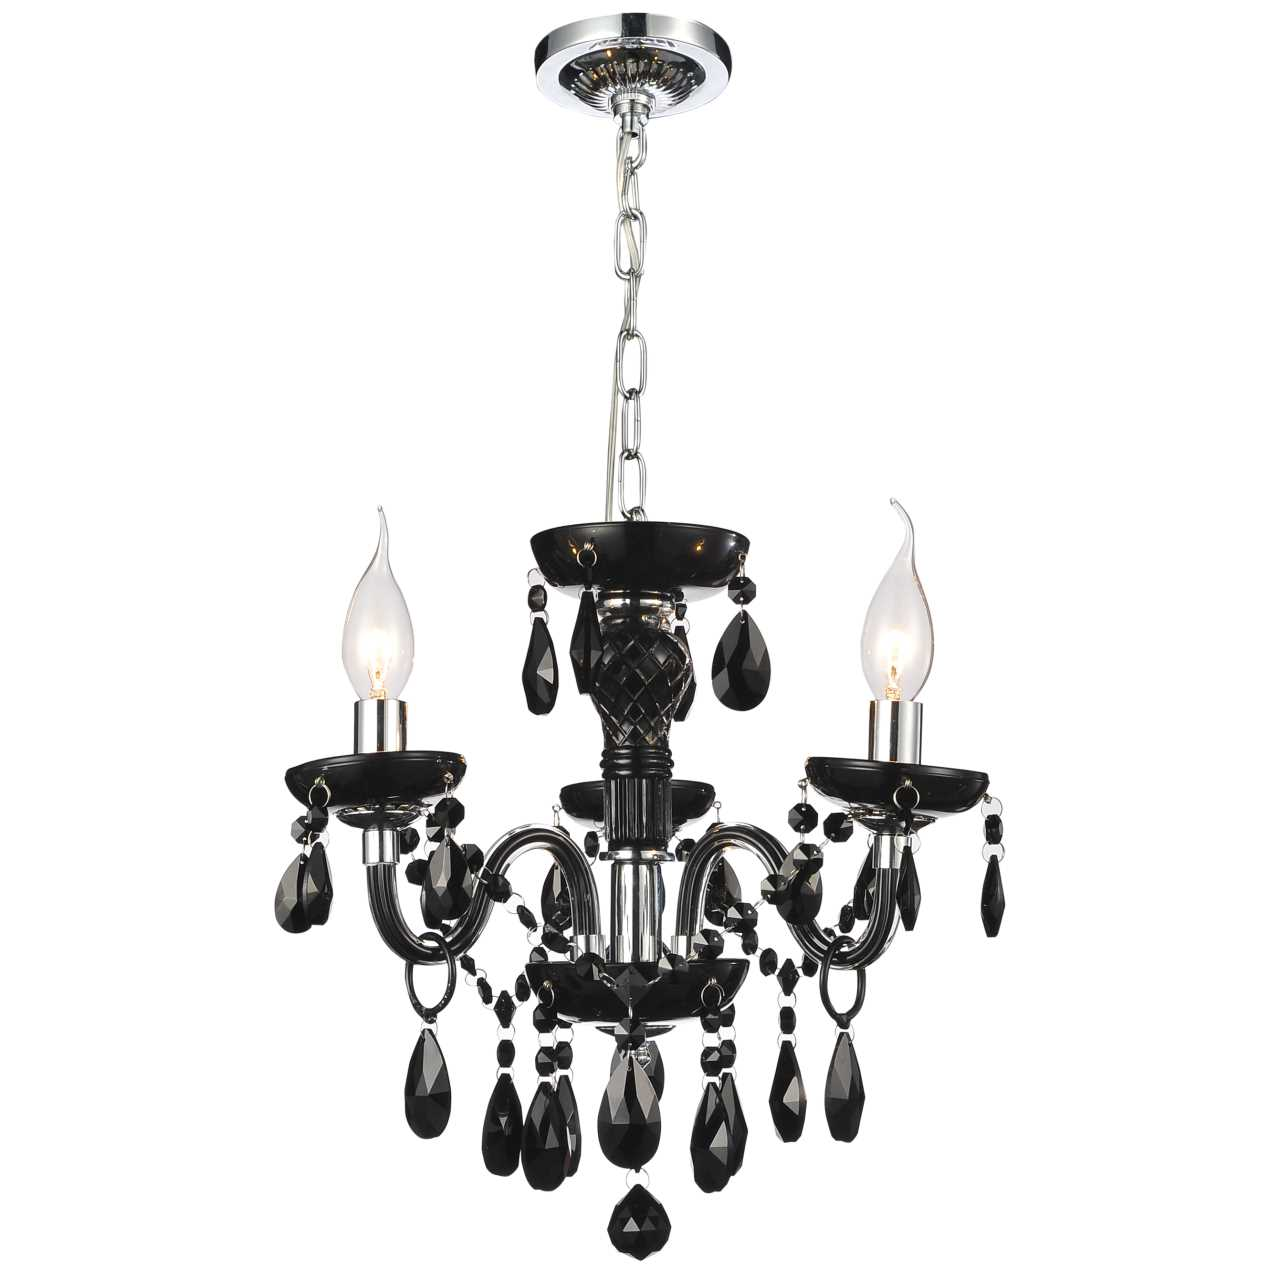 Brizzo lighting stores 14 victorian traditional crystal round mini picture of 14 victorian traditional crystal round mini chandelier jet black tear drops crystals 3 aloadofball Gallery